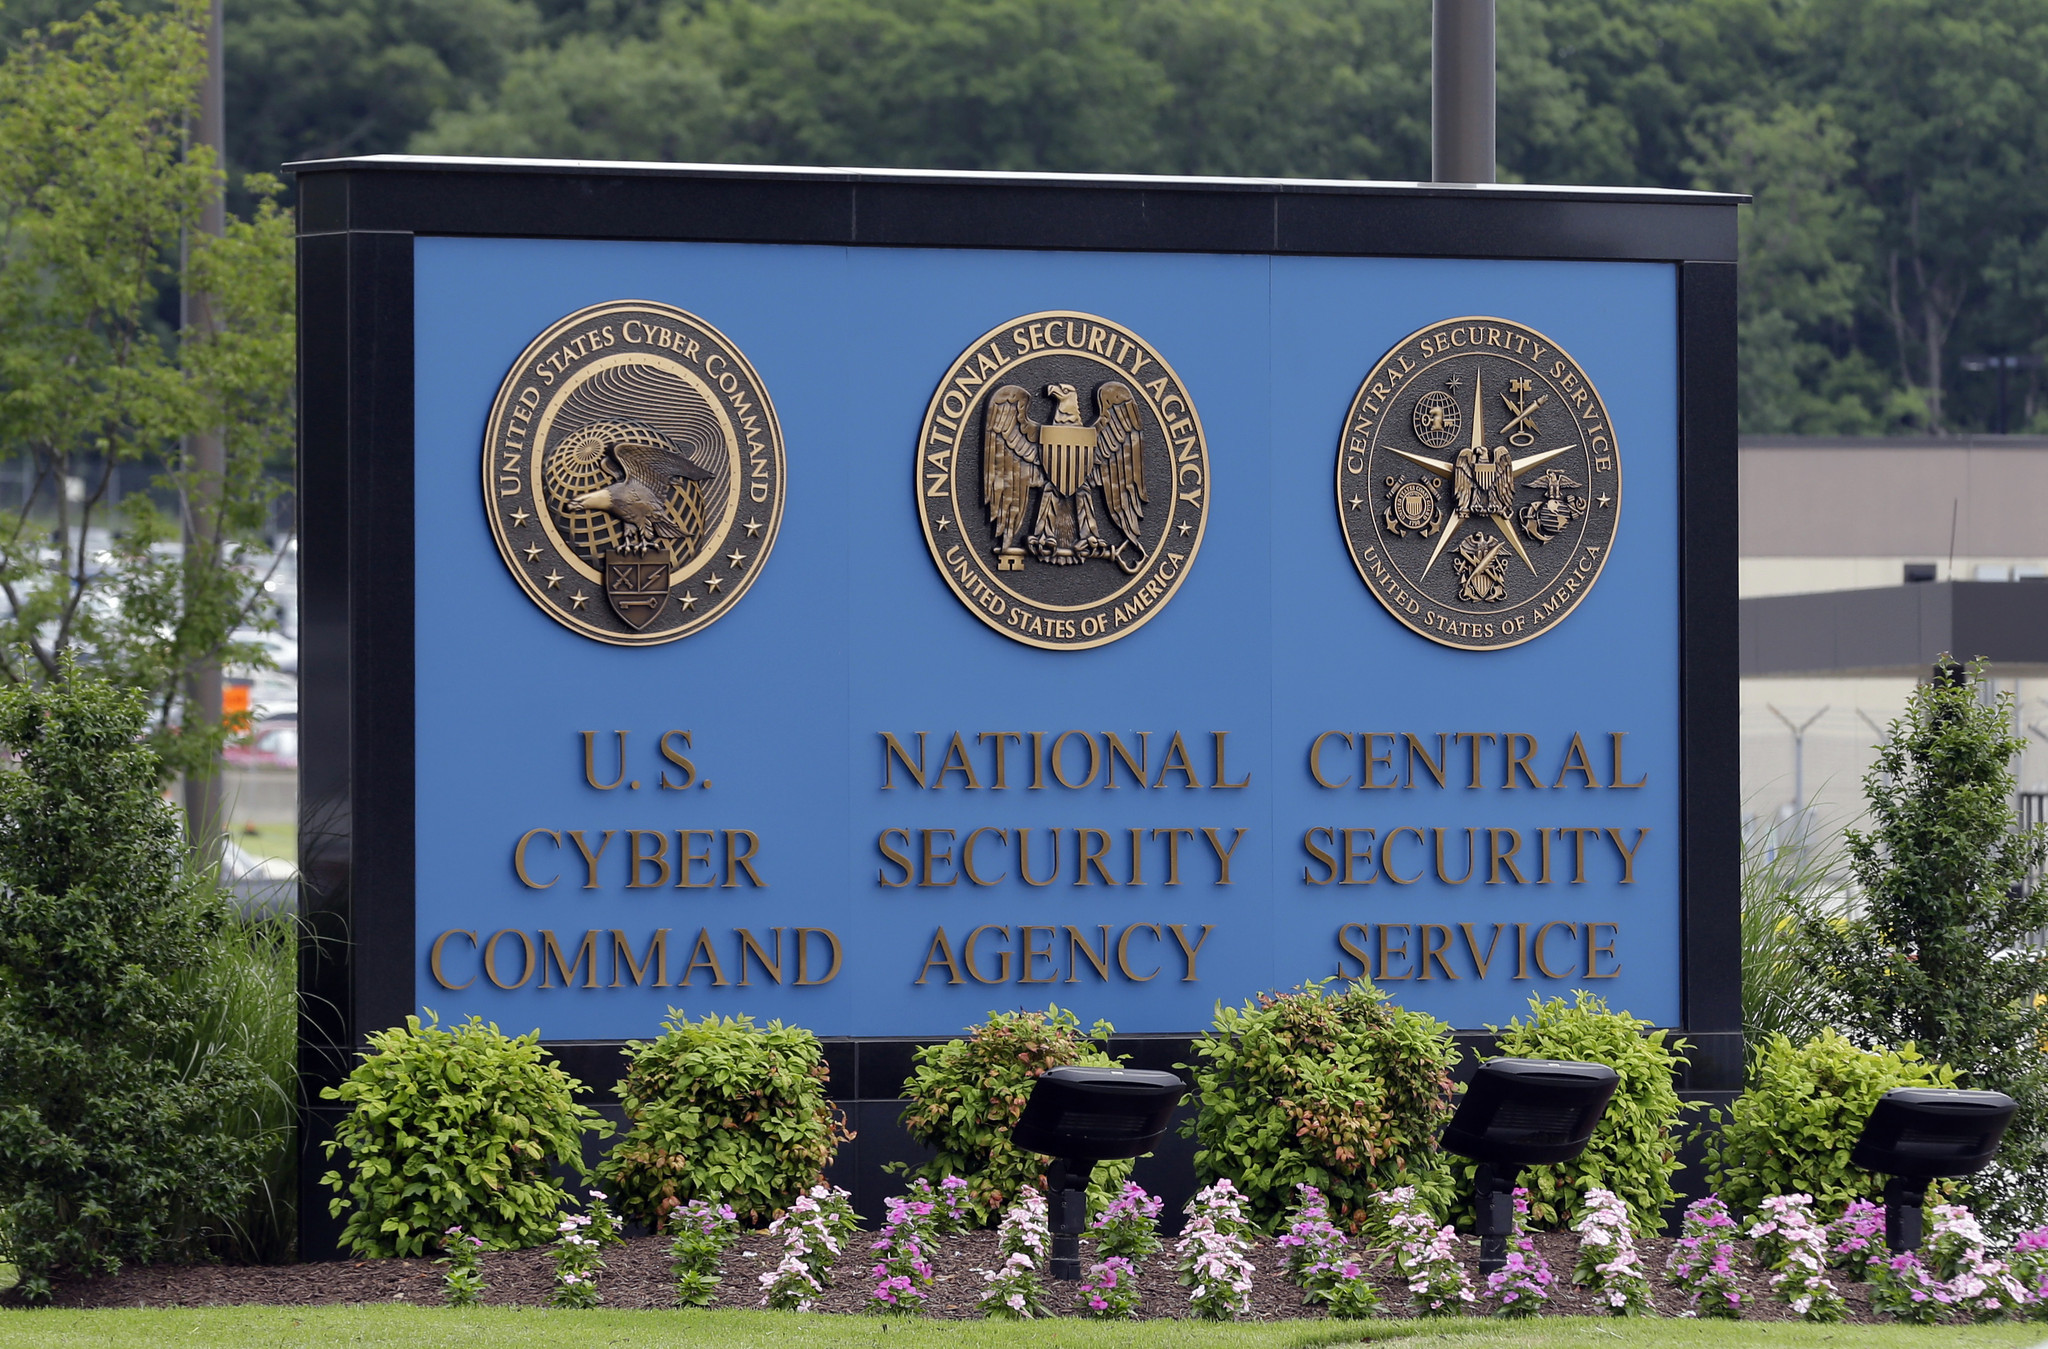 Pentagon seeks cyber-weapons strong enough to deter attacks